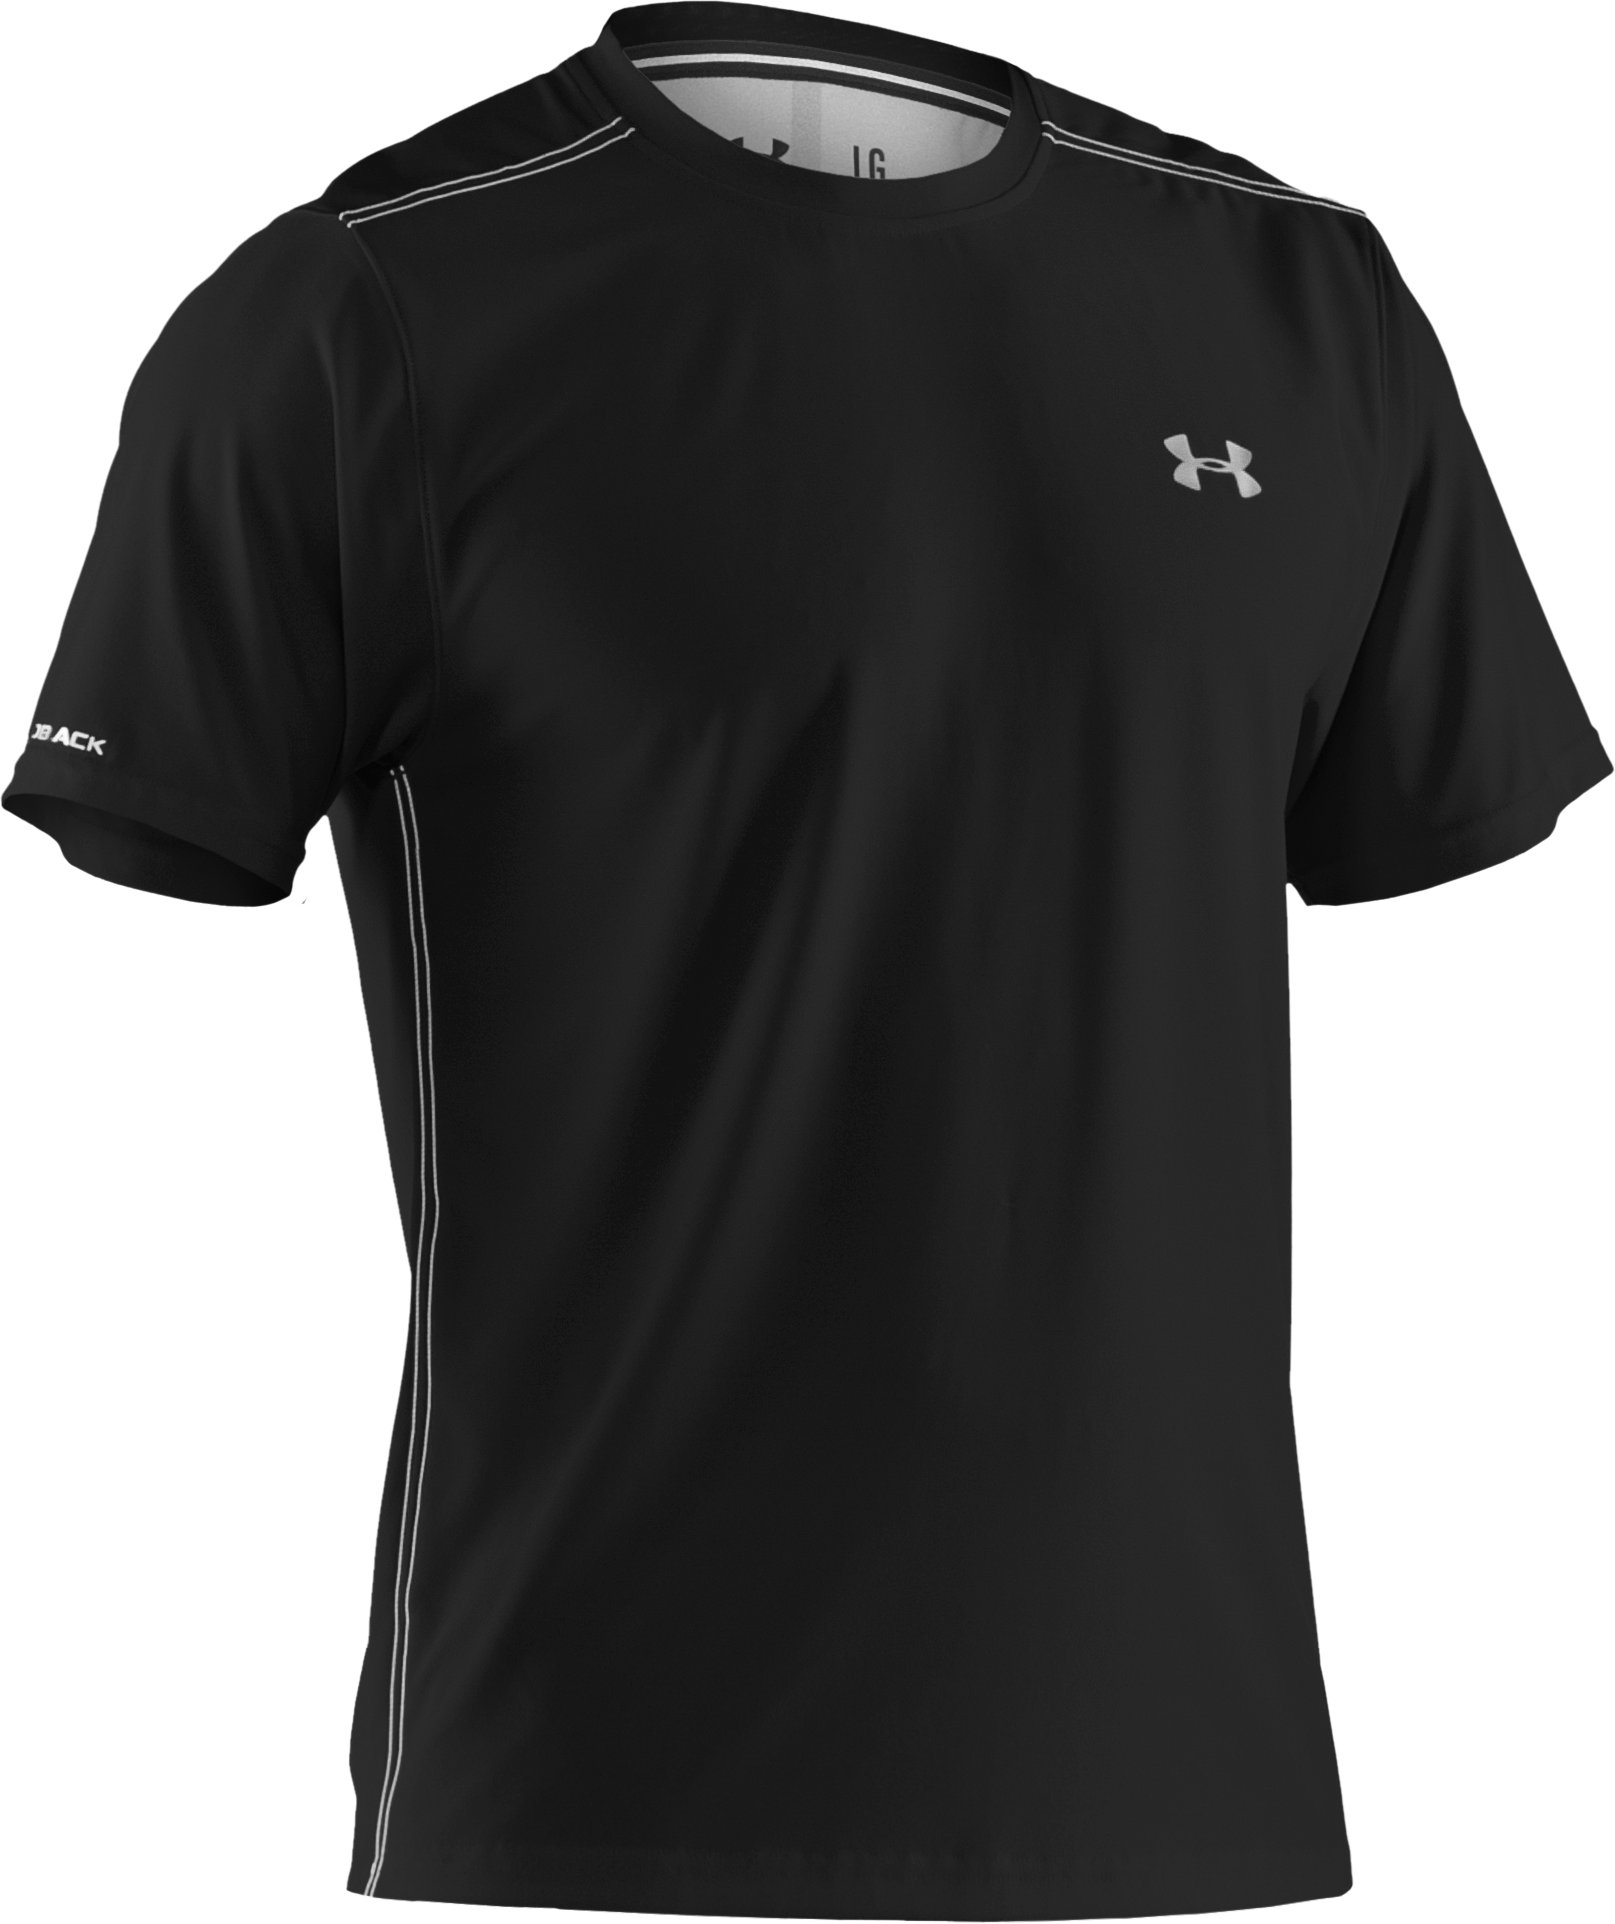 Men's coldblack® Short Sleeve T-Shirt, Black